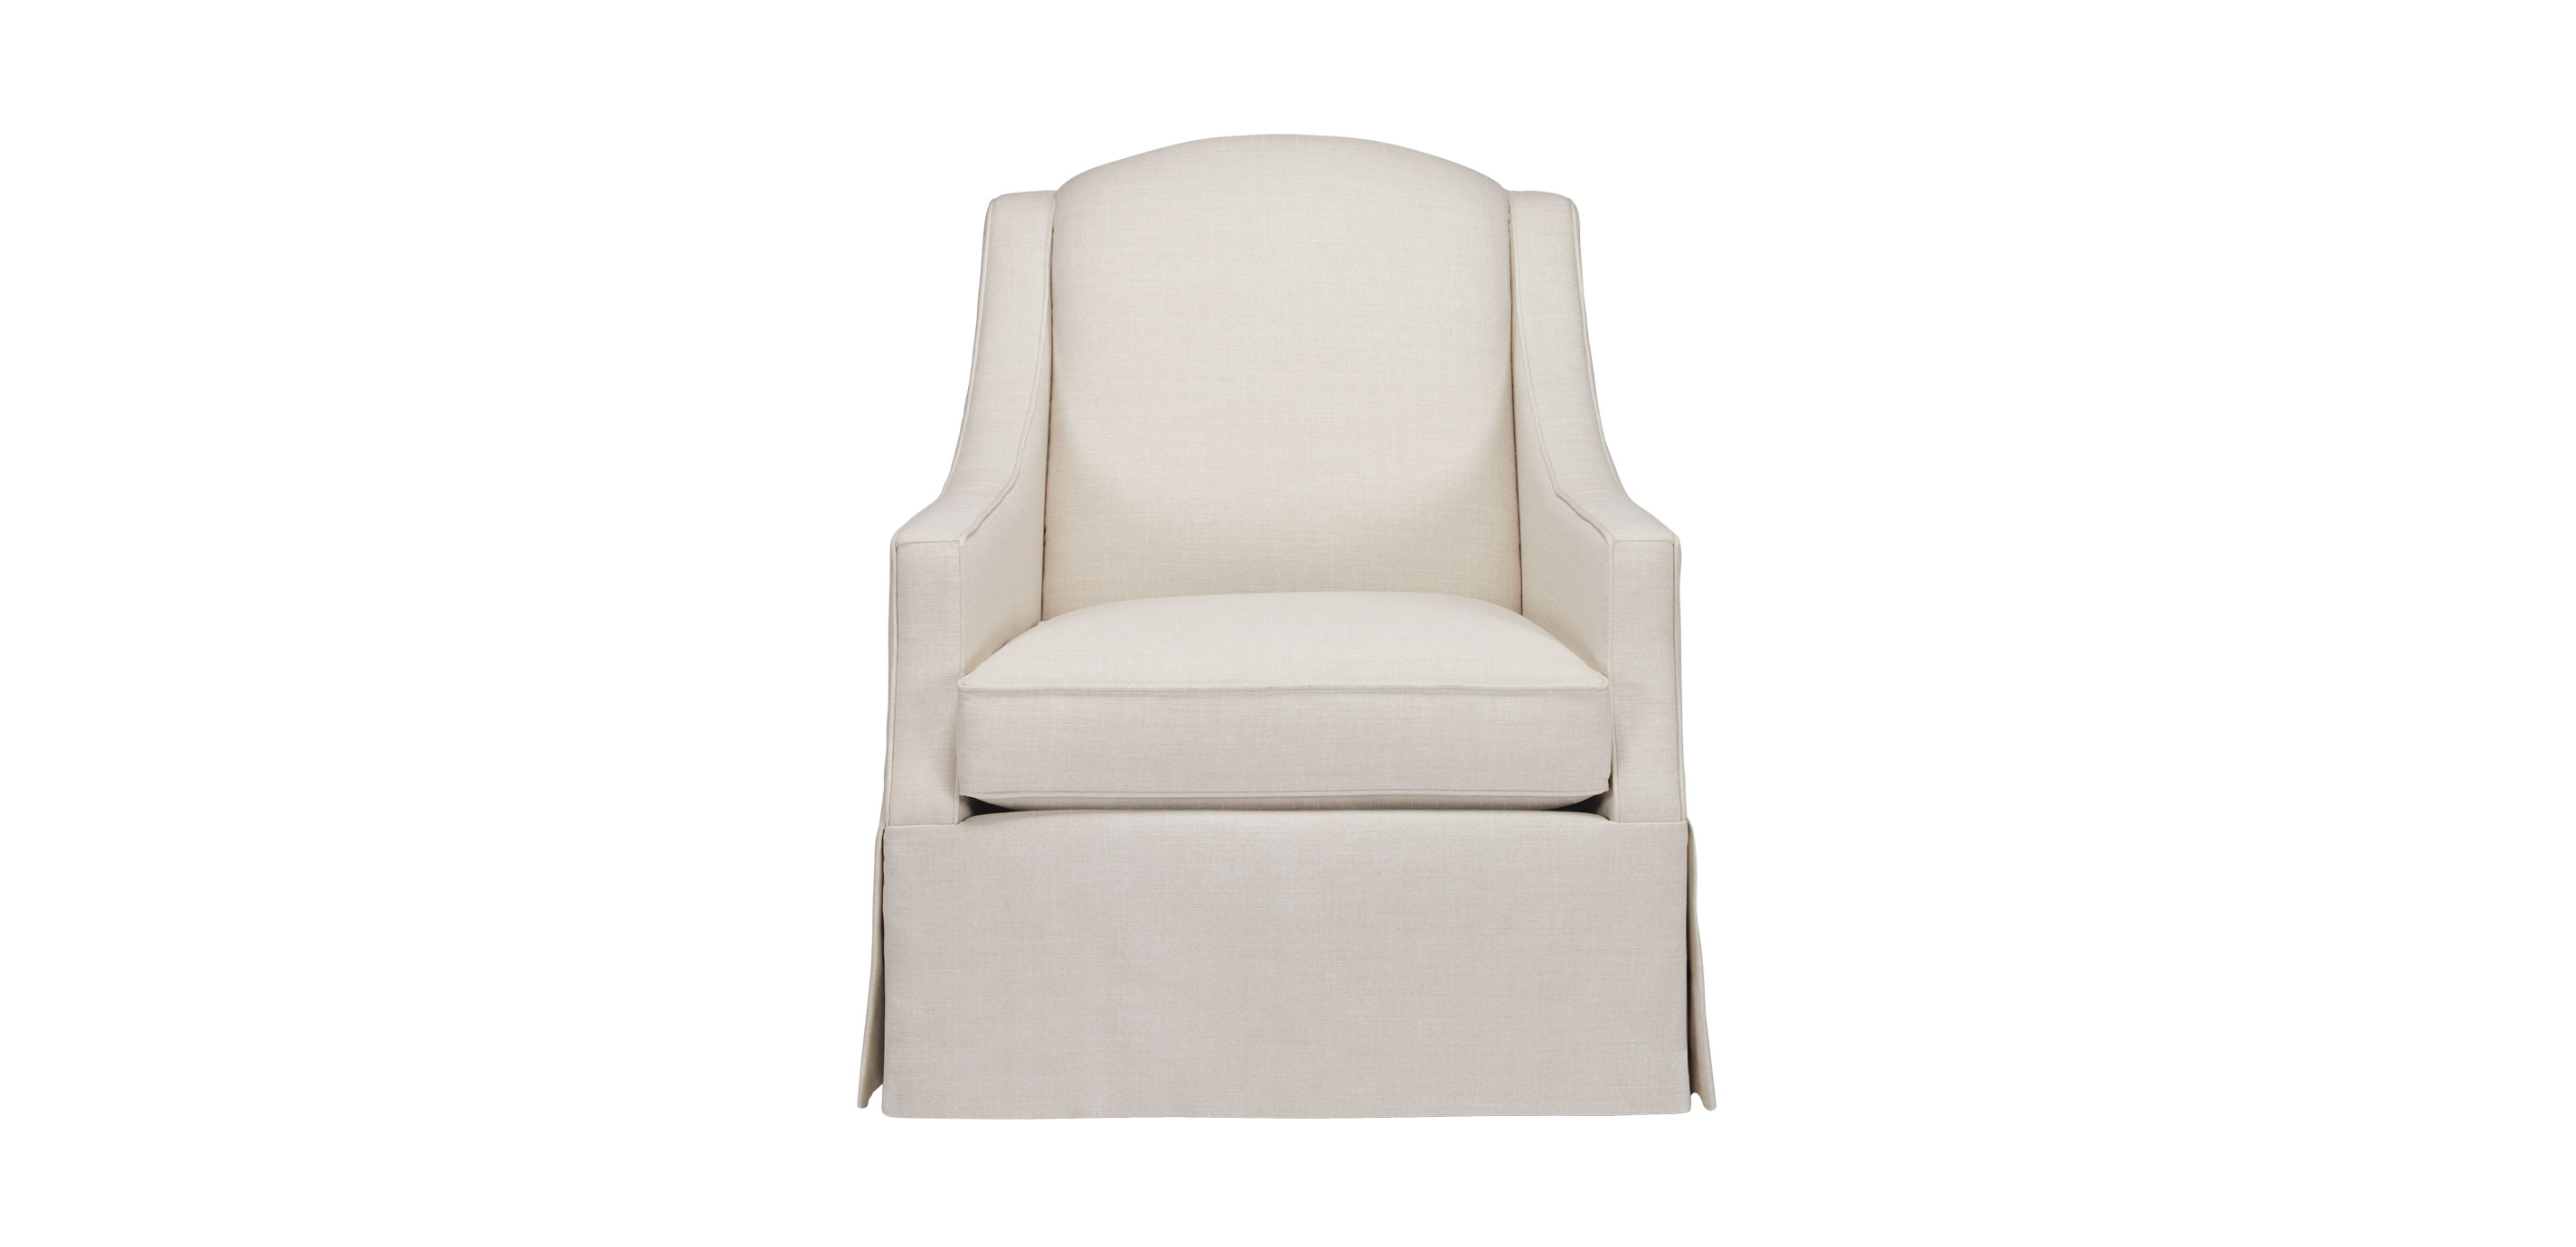 Magnificent Sage Small Swivel Chair Skirted Swivel Chair Ethan Allen Caraccident5 Cool Chair Designs And Ideas Caraccident5Info